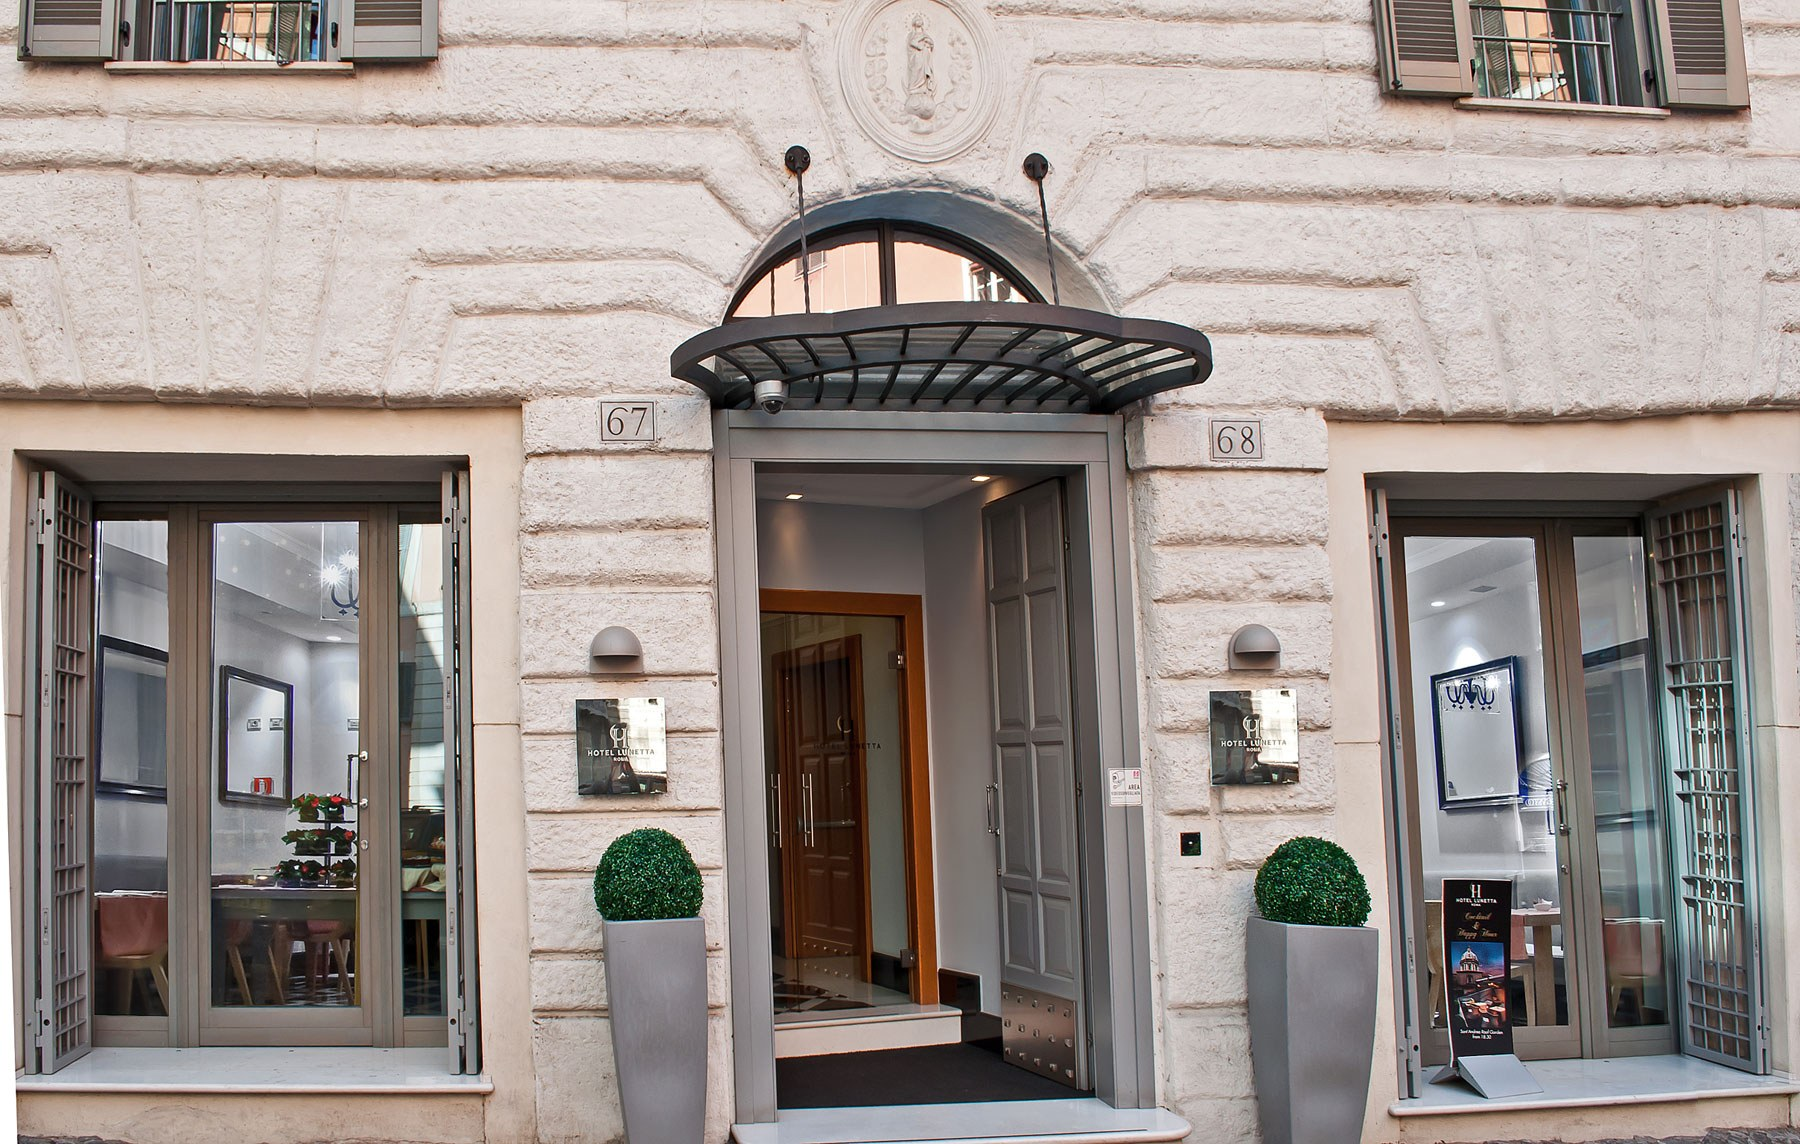 Palazzo navona hotel boutique hotels rome for Best boutique hotels in rome 2015